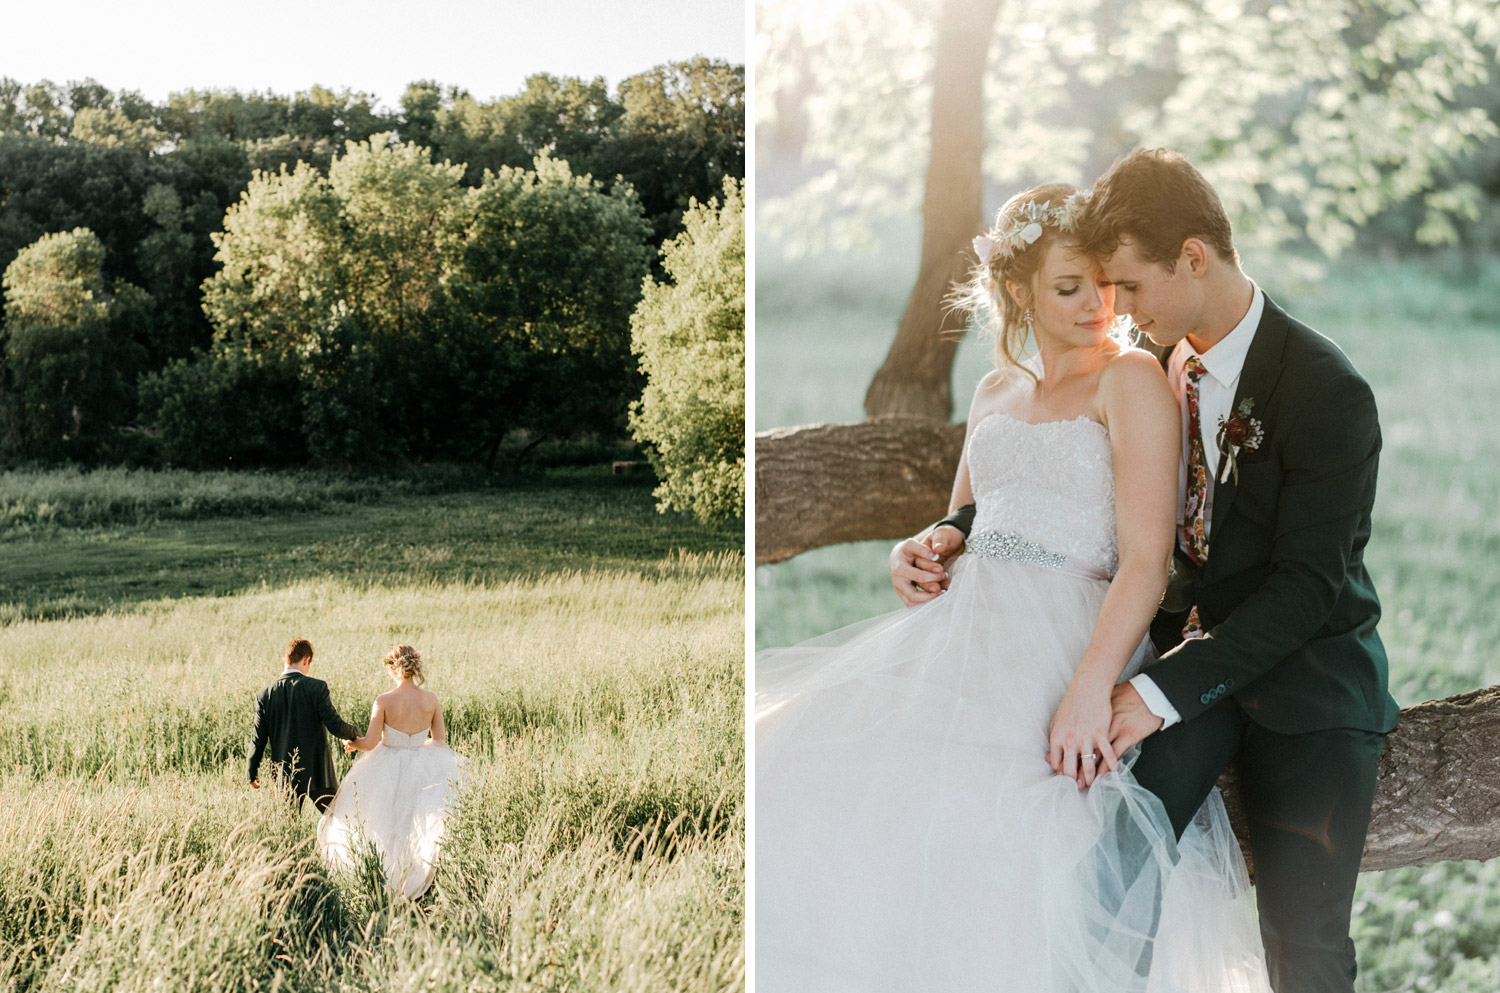 Portraits of bride and groom during sunset at rustic oaks by geneoh